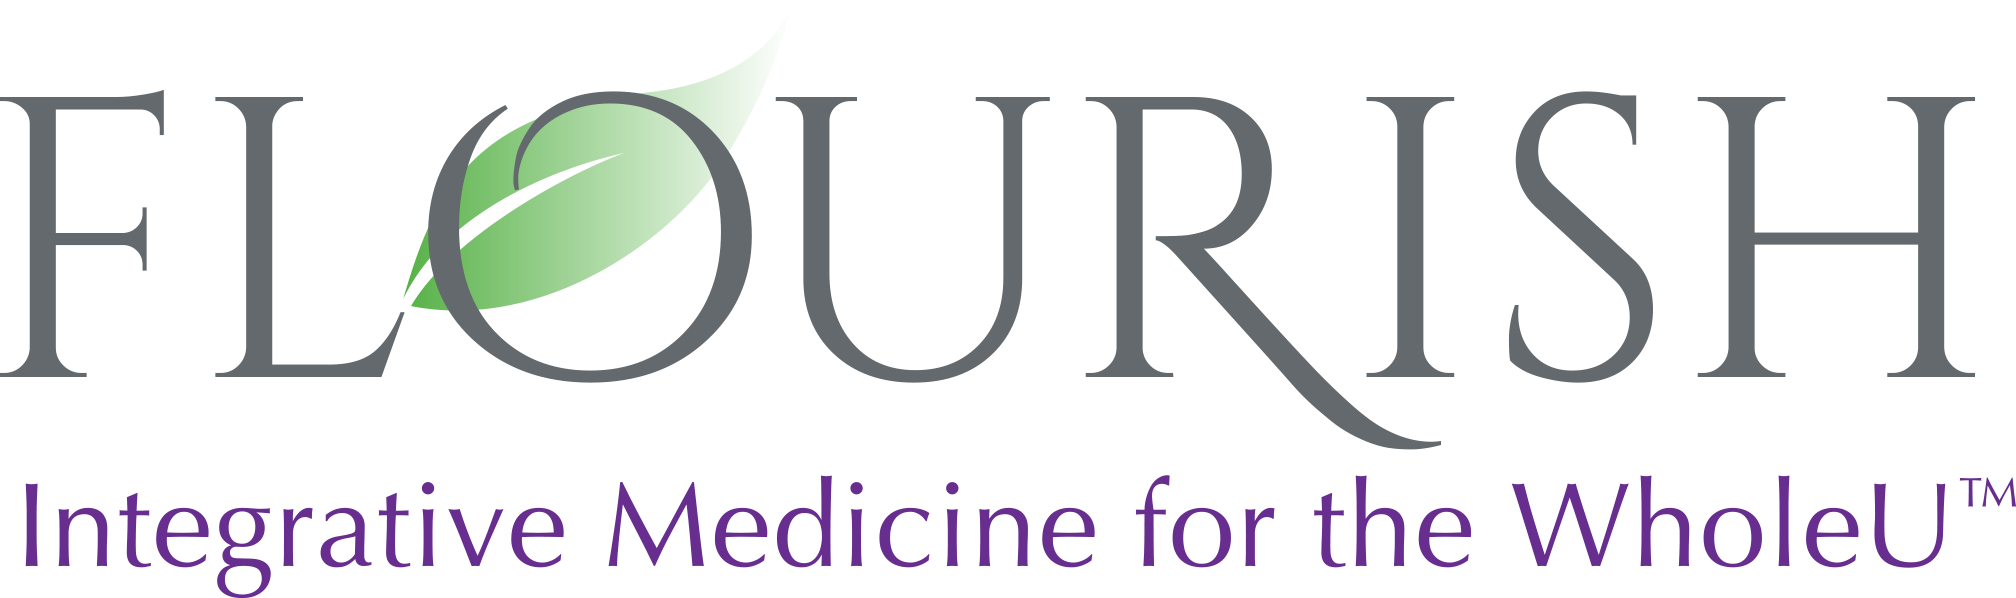 FLOURISH Integrative Medicine